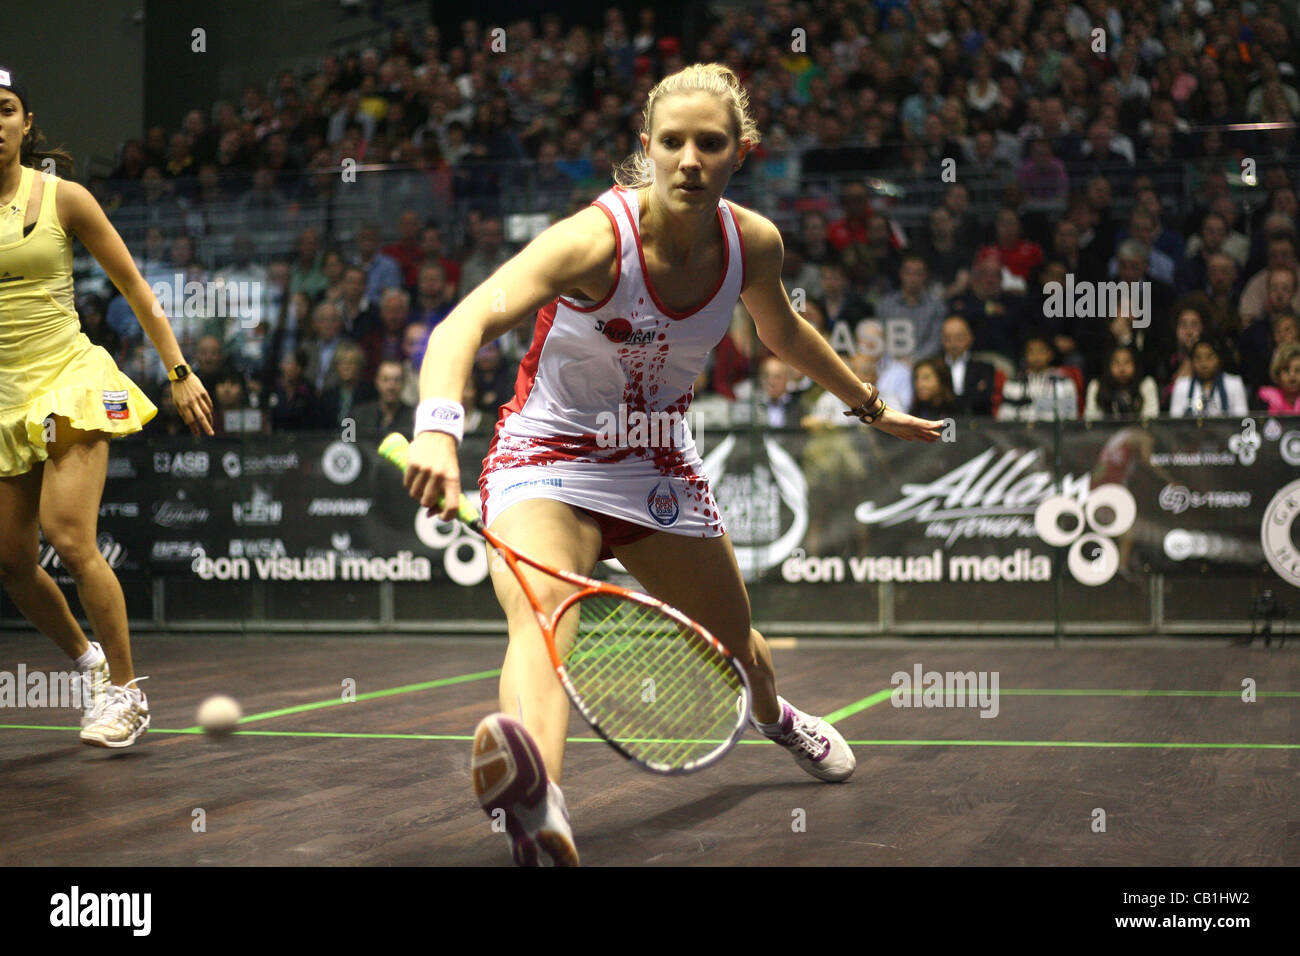 19.05.2012 The O2, London, England. Laura Massaro (ENG) in action against Nicol David (MAS) during their semi-final - Stock Image